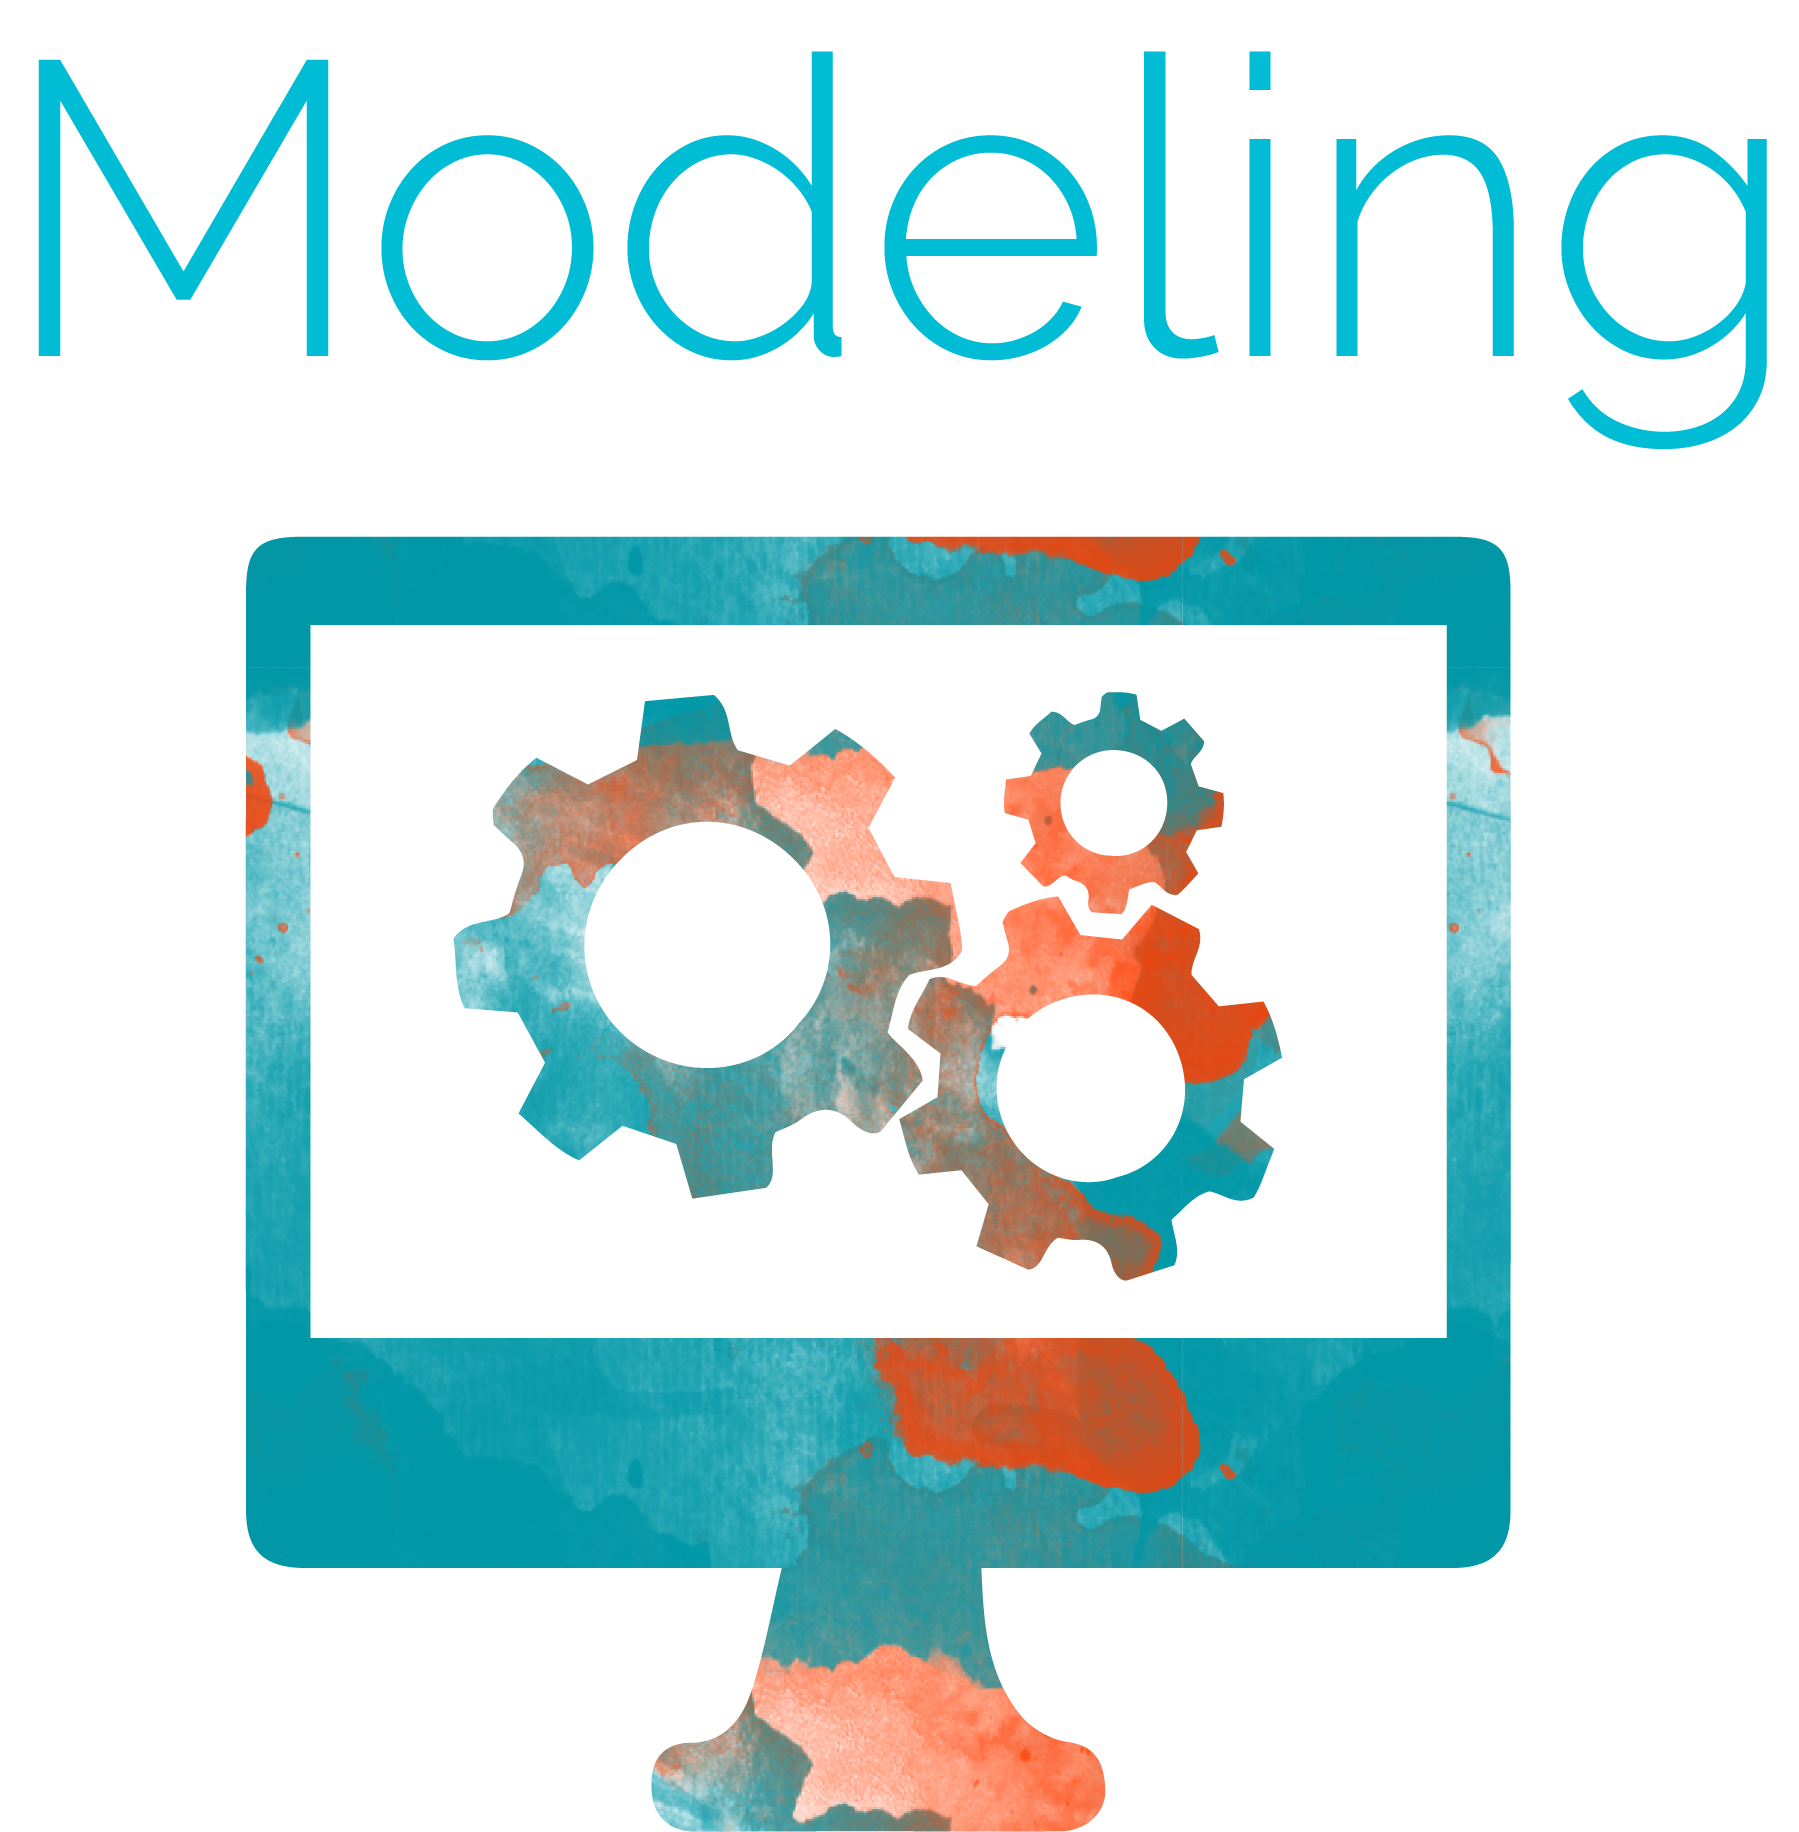 Pathway clipart project approach. Team tudelft modeling igem